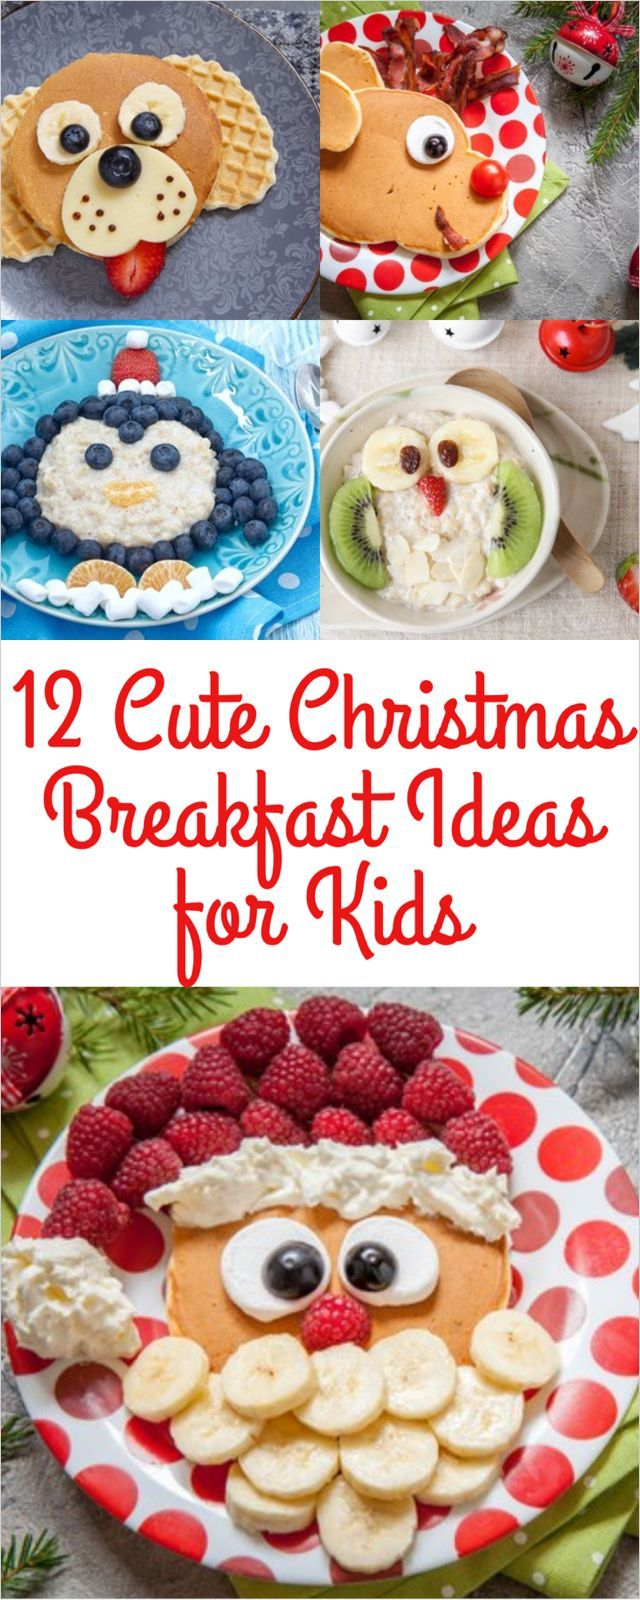 Best Breakfast Ideas For Toddlers Christmas Morning Breakfast